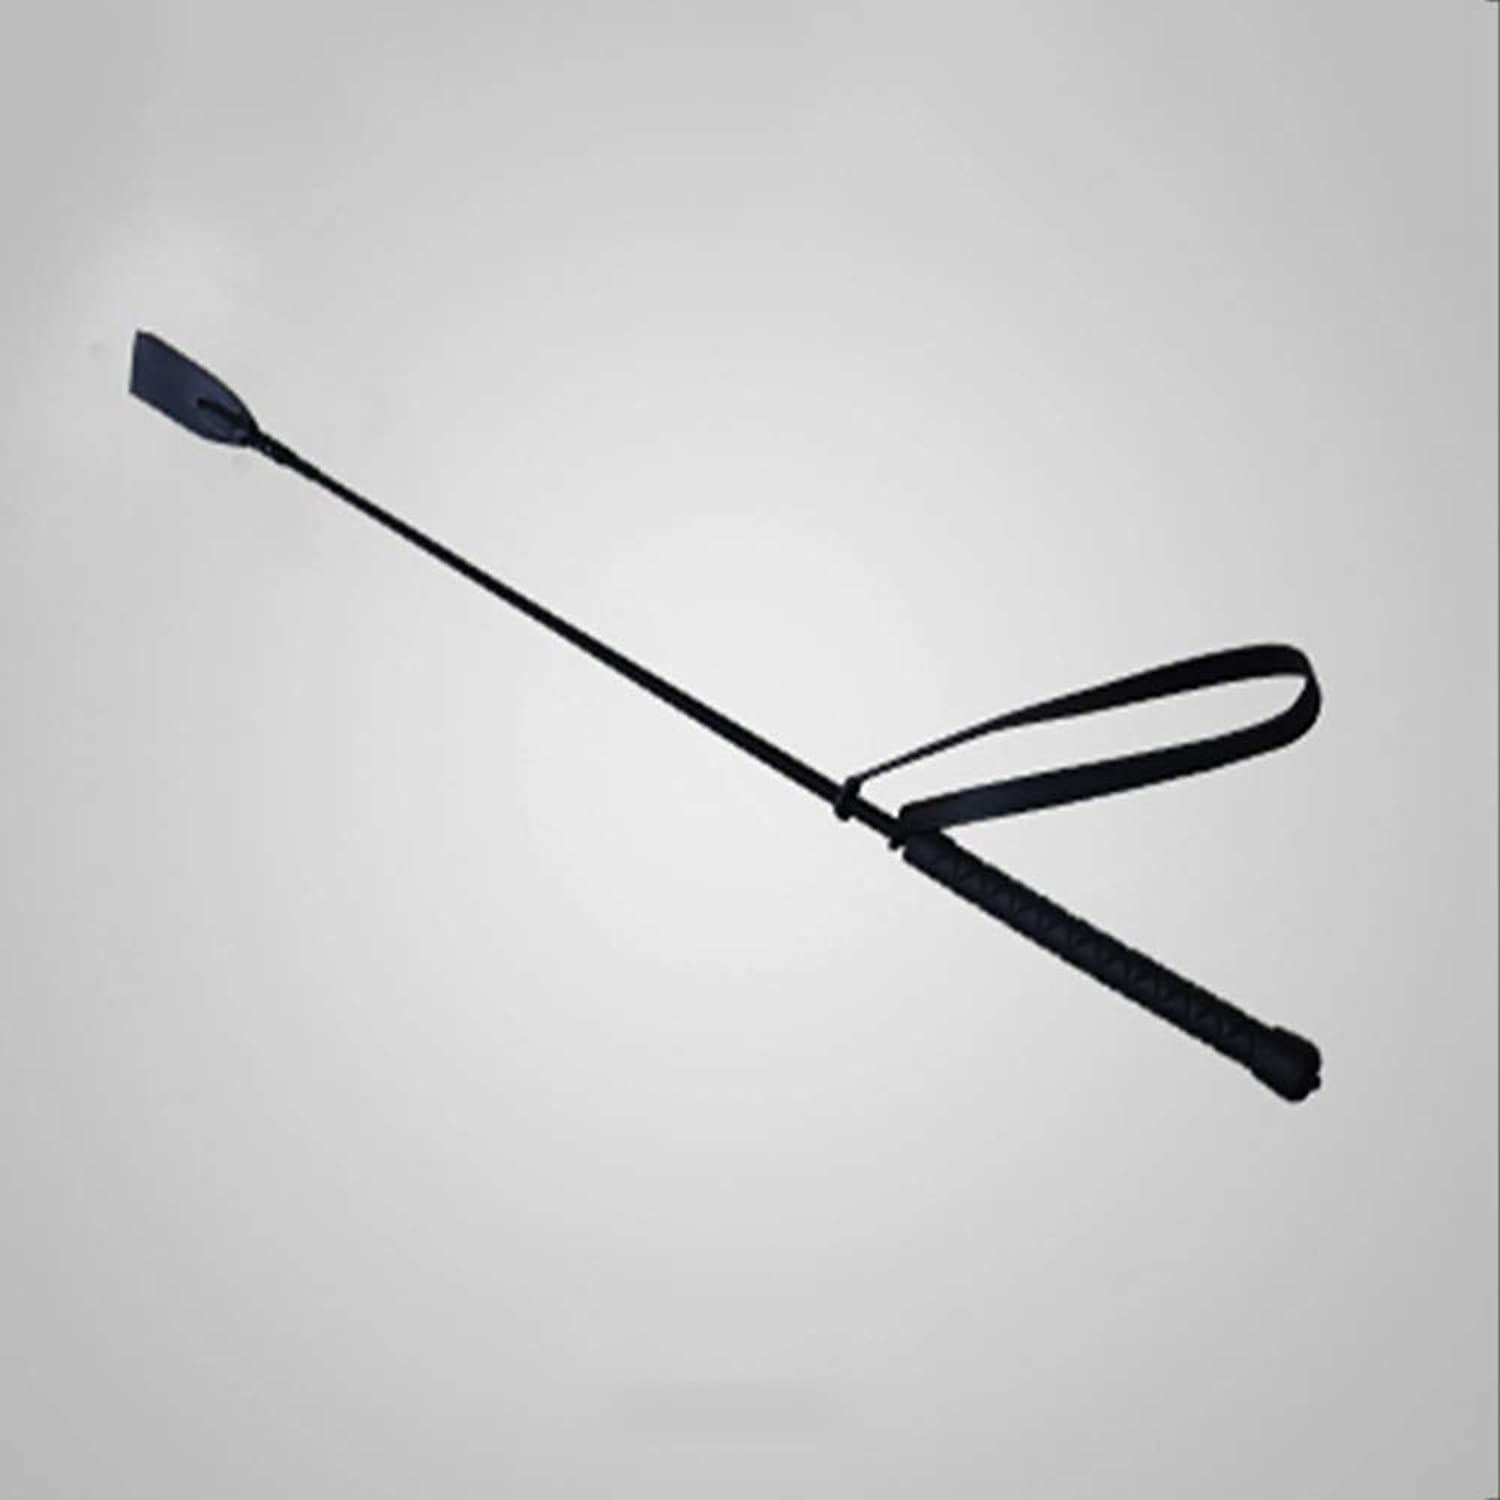 Horse Riding Crops,Horse Whip Crop Suitable for All Equestrian Styles 26inch Black (with Wrist Strap)